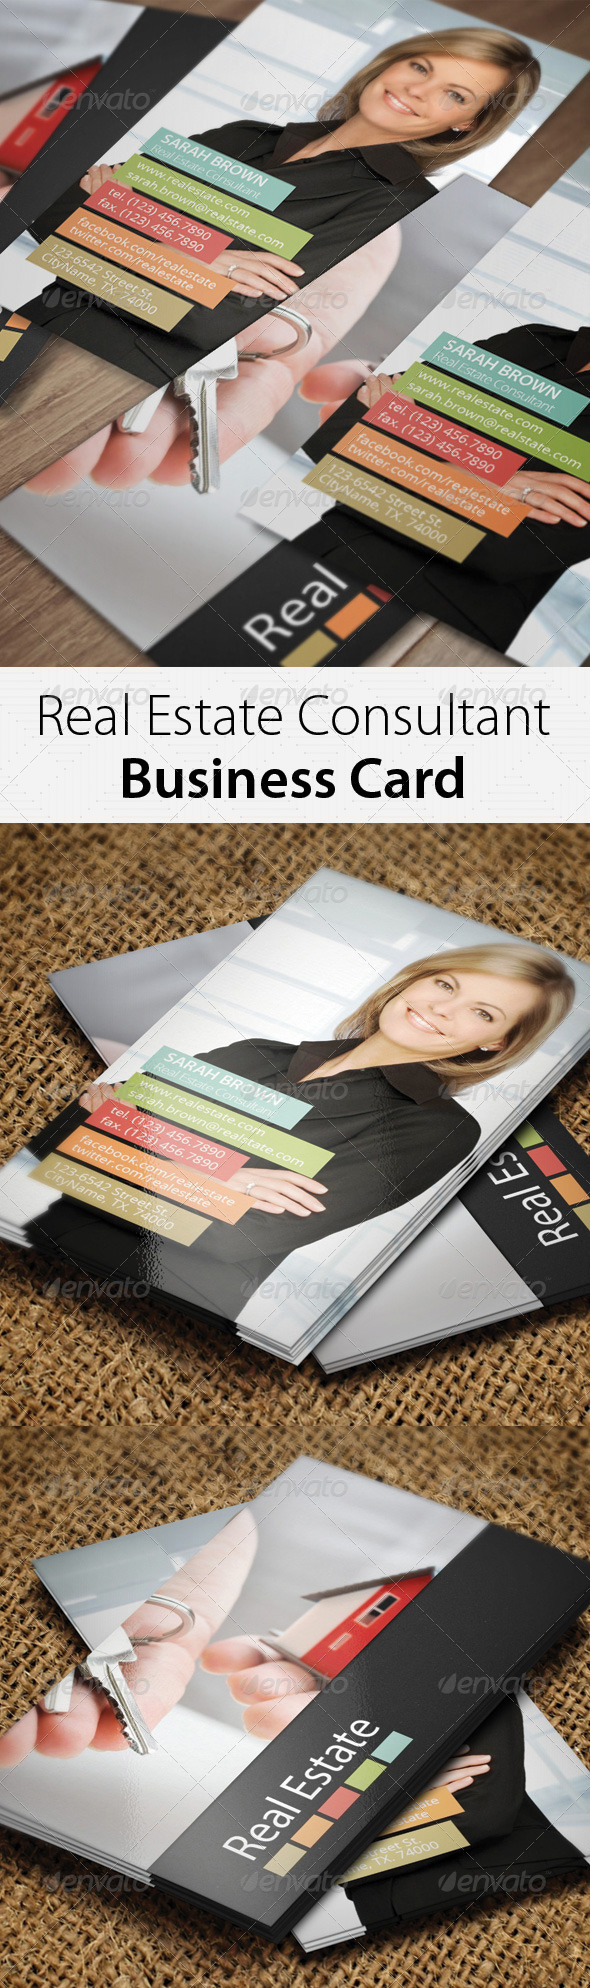 Real Estate Consultant Business Card - Corporate Business Cards